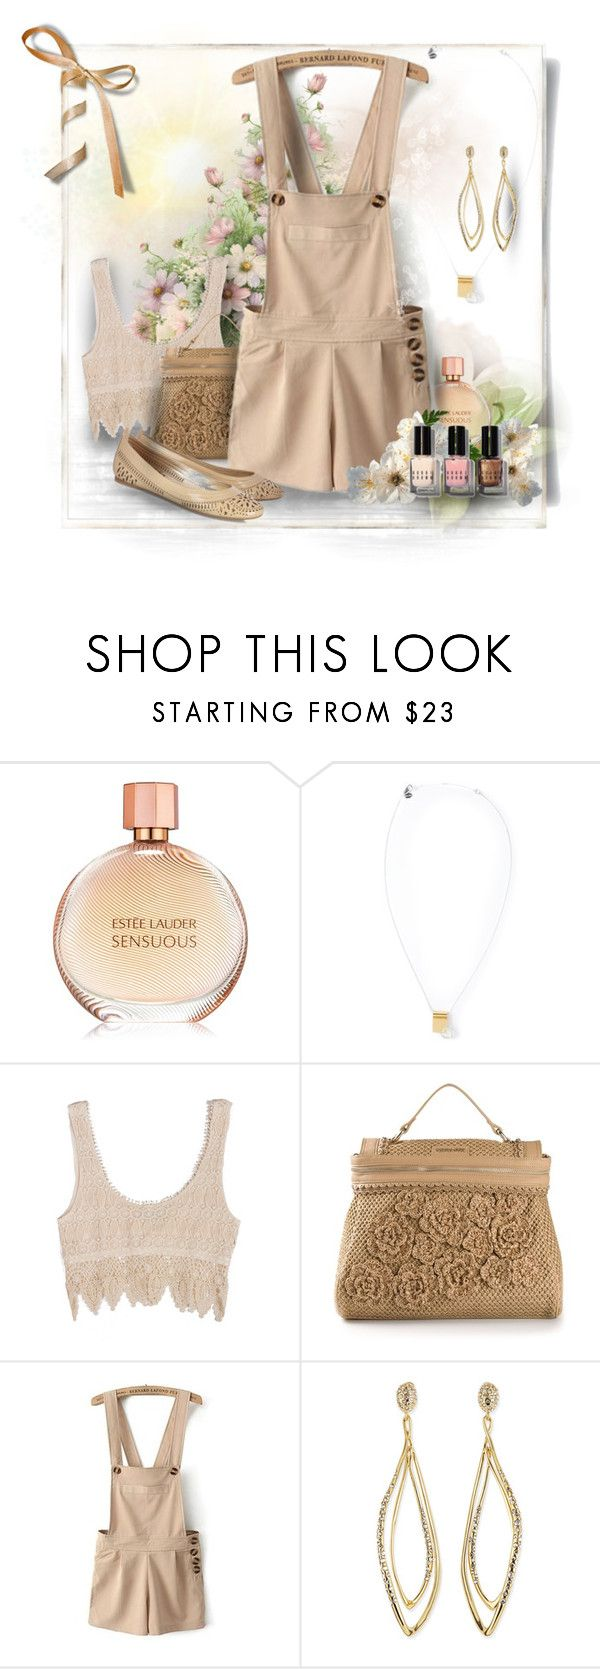 """""""Tricky Trend: Look Chic in Overalls"""" by debi820 ❤ liked on Polyvore featuring Ruifier, Twin-Set, Alexis Bittar, belle by Sigerson Morrison and Bobbi Brown Cosmetics"""